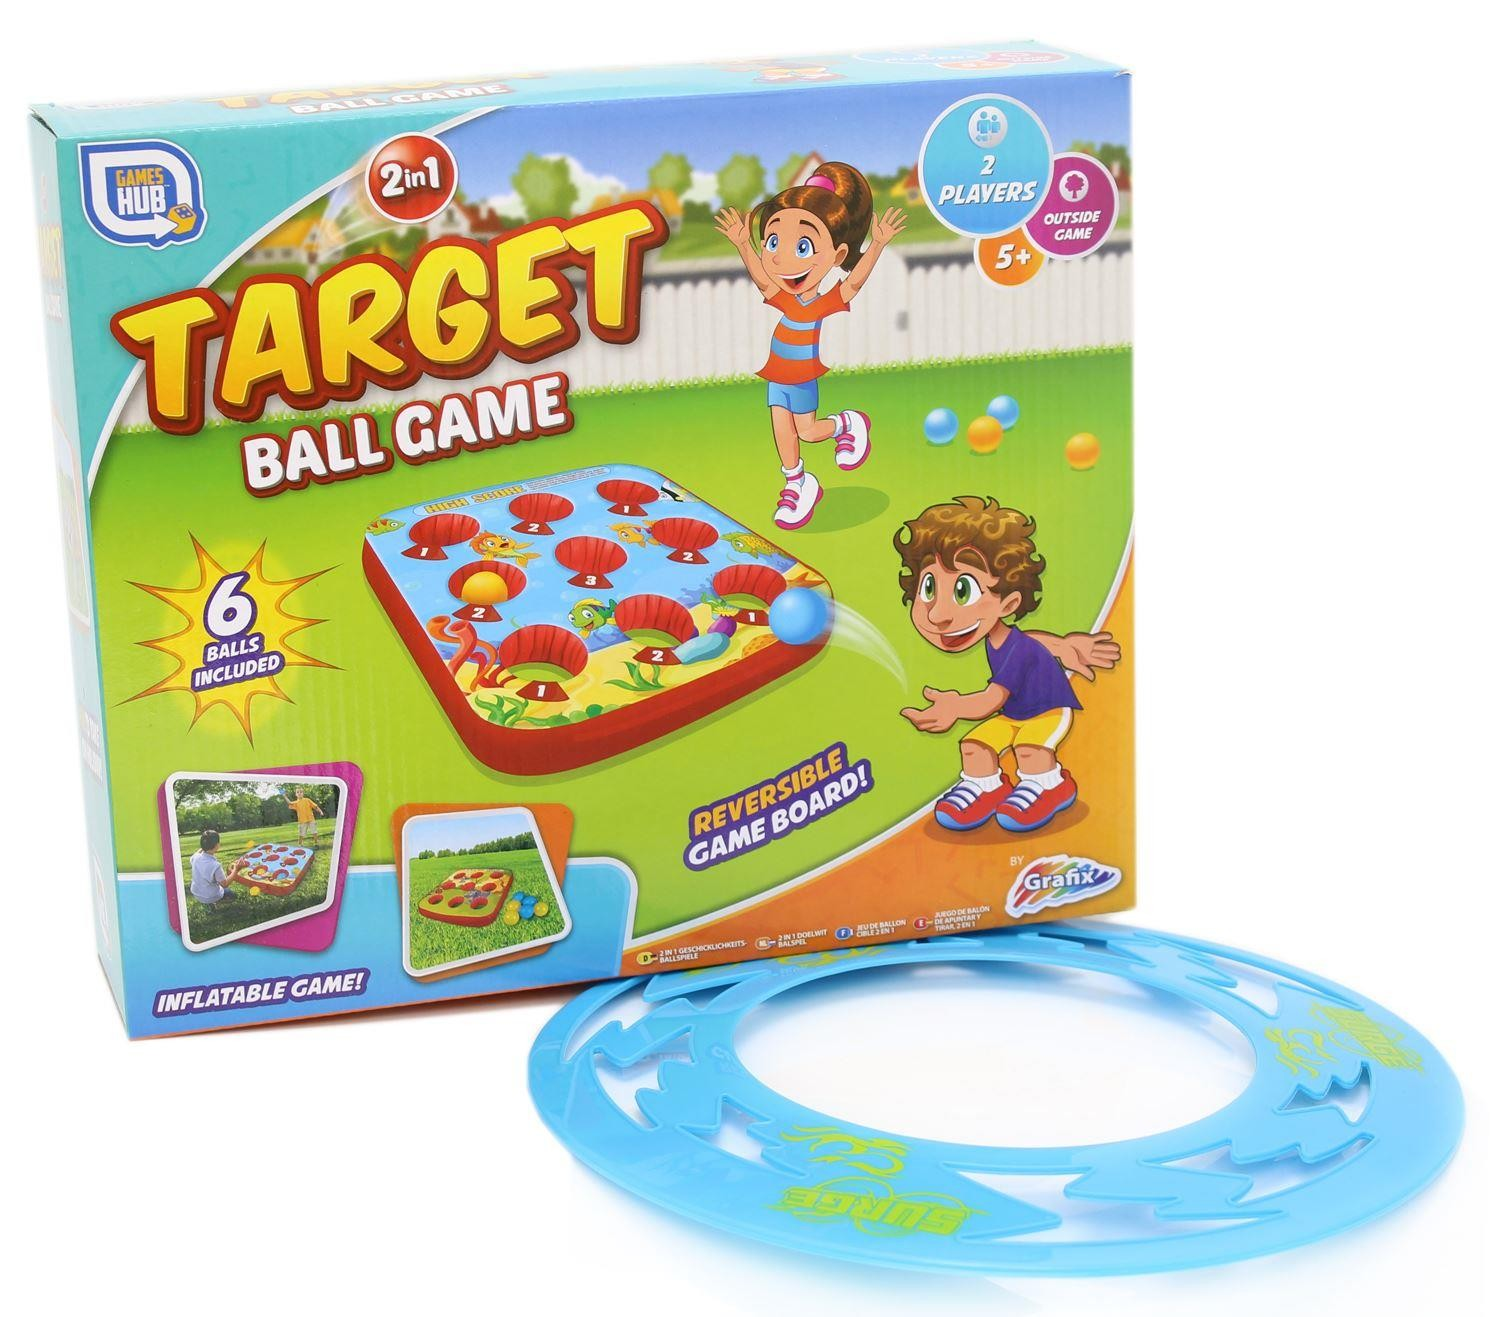 2 in 1 Target Ball Game